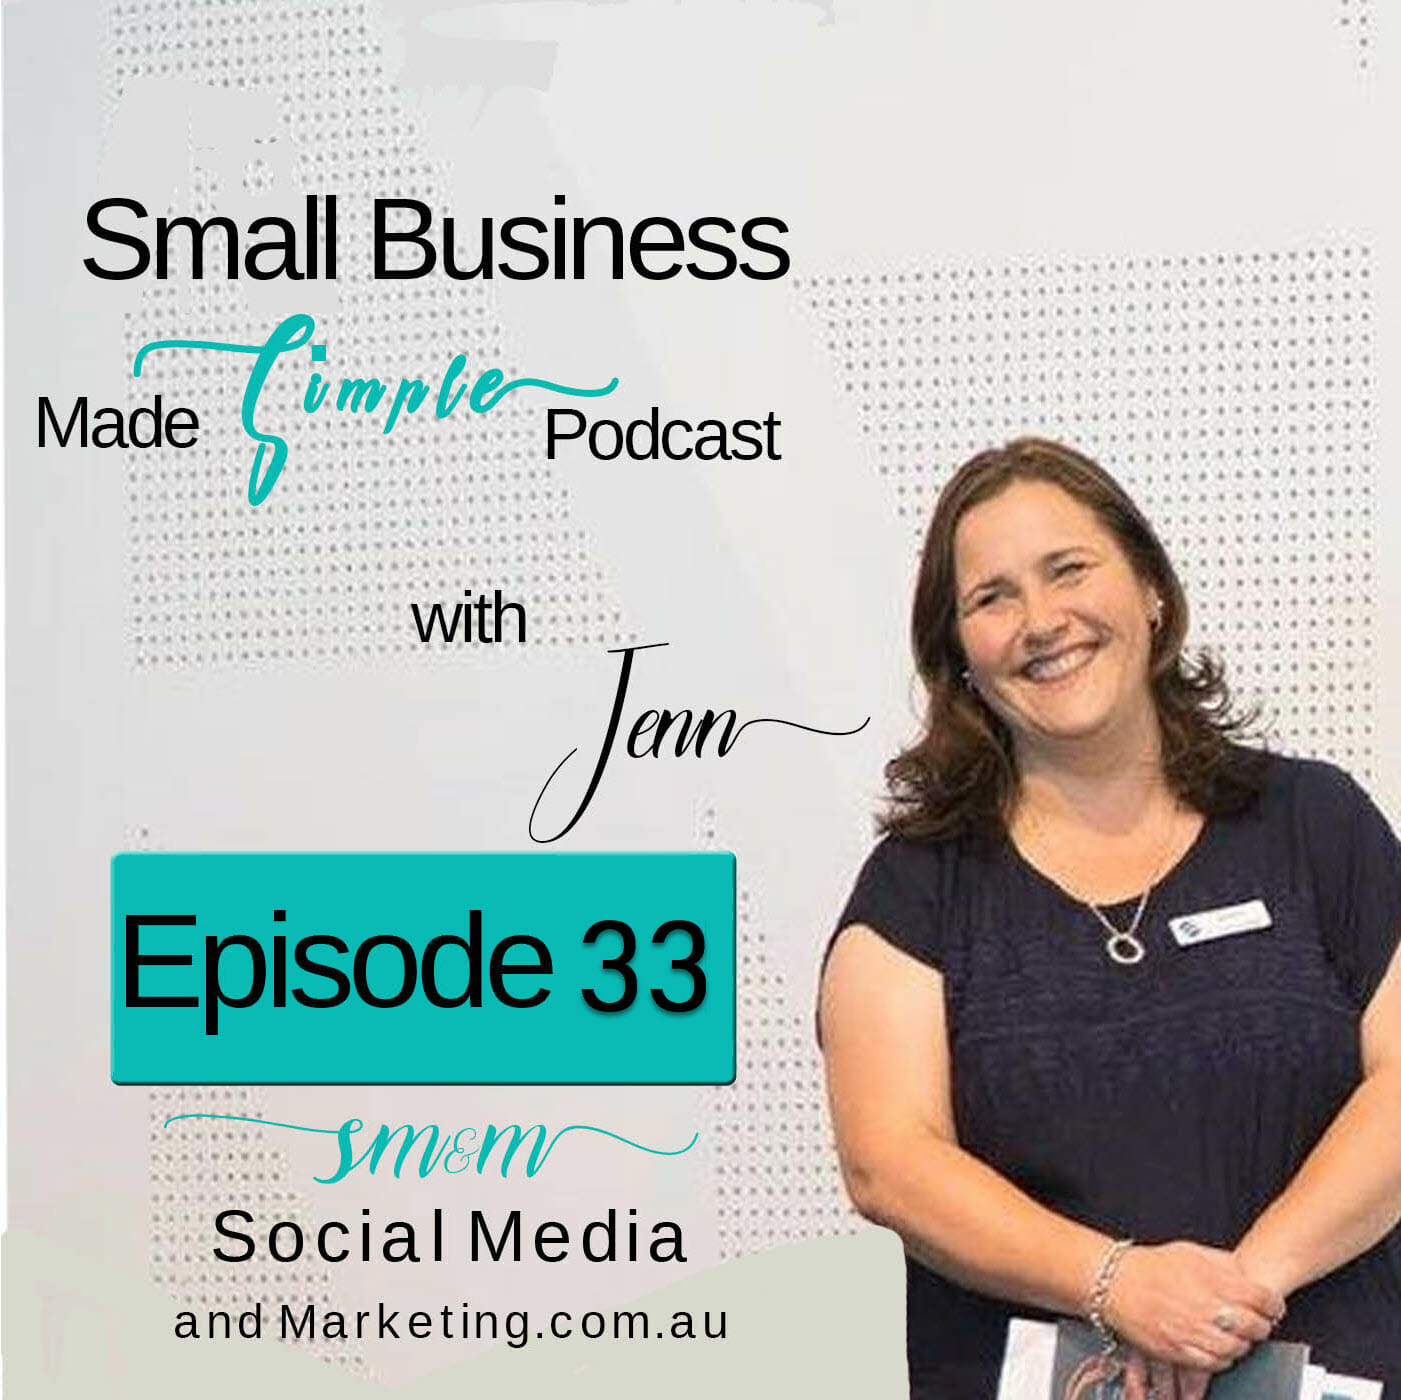 EPISODE 33 – THE CUSTOMER JOURNEY